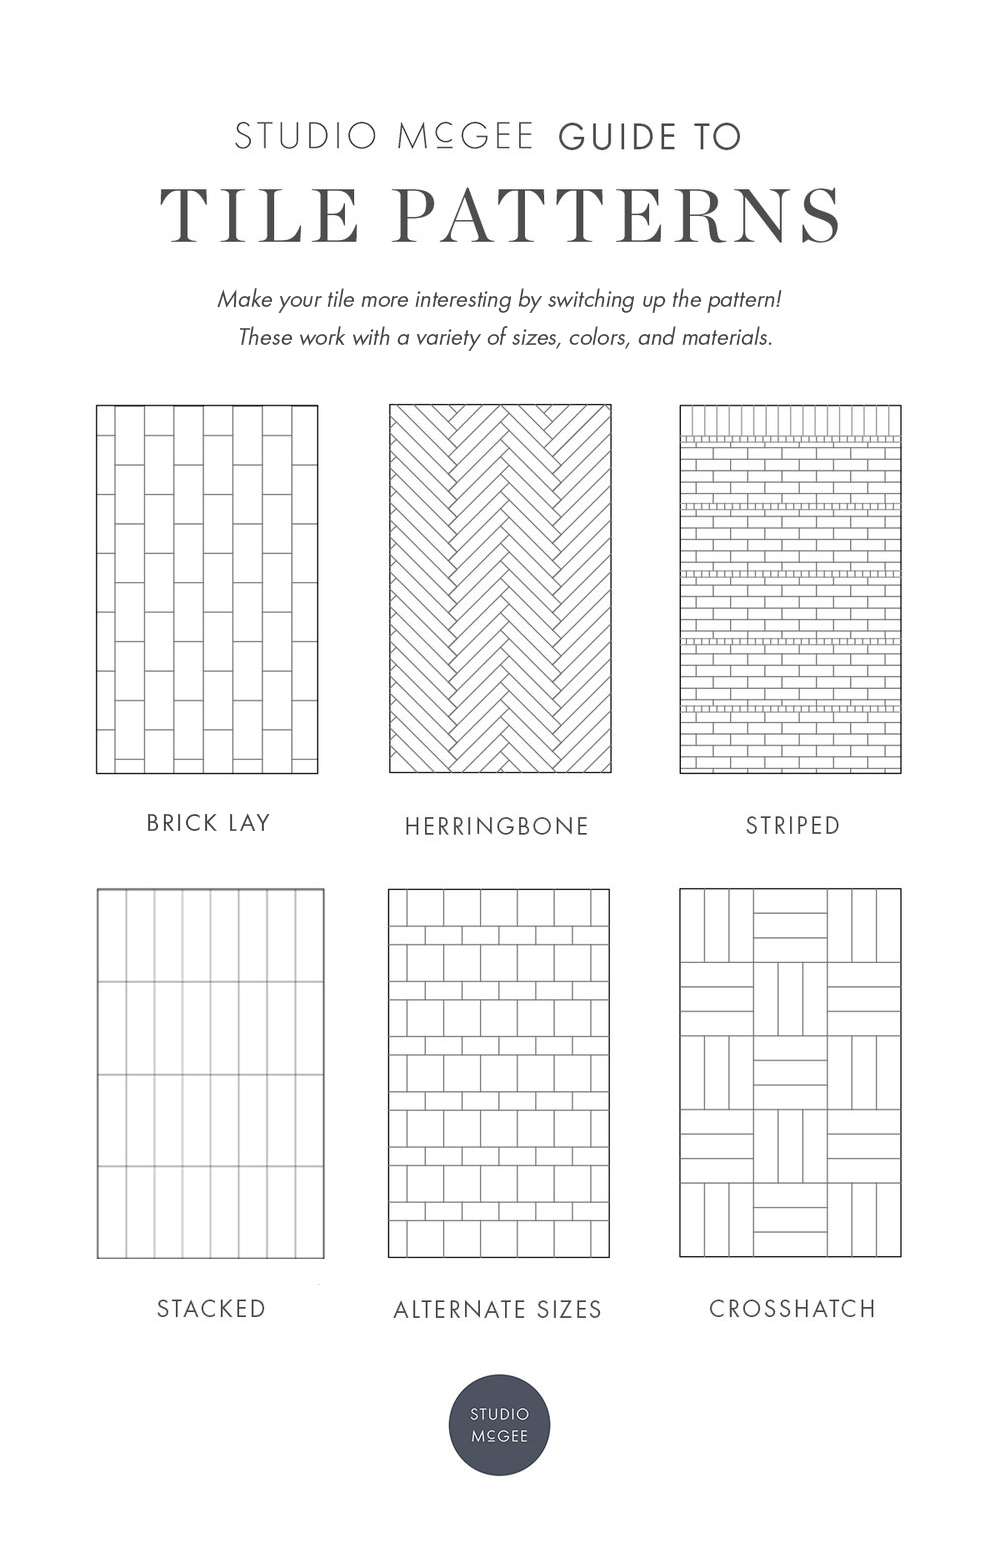 Our Guide to Patterned Tile